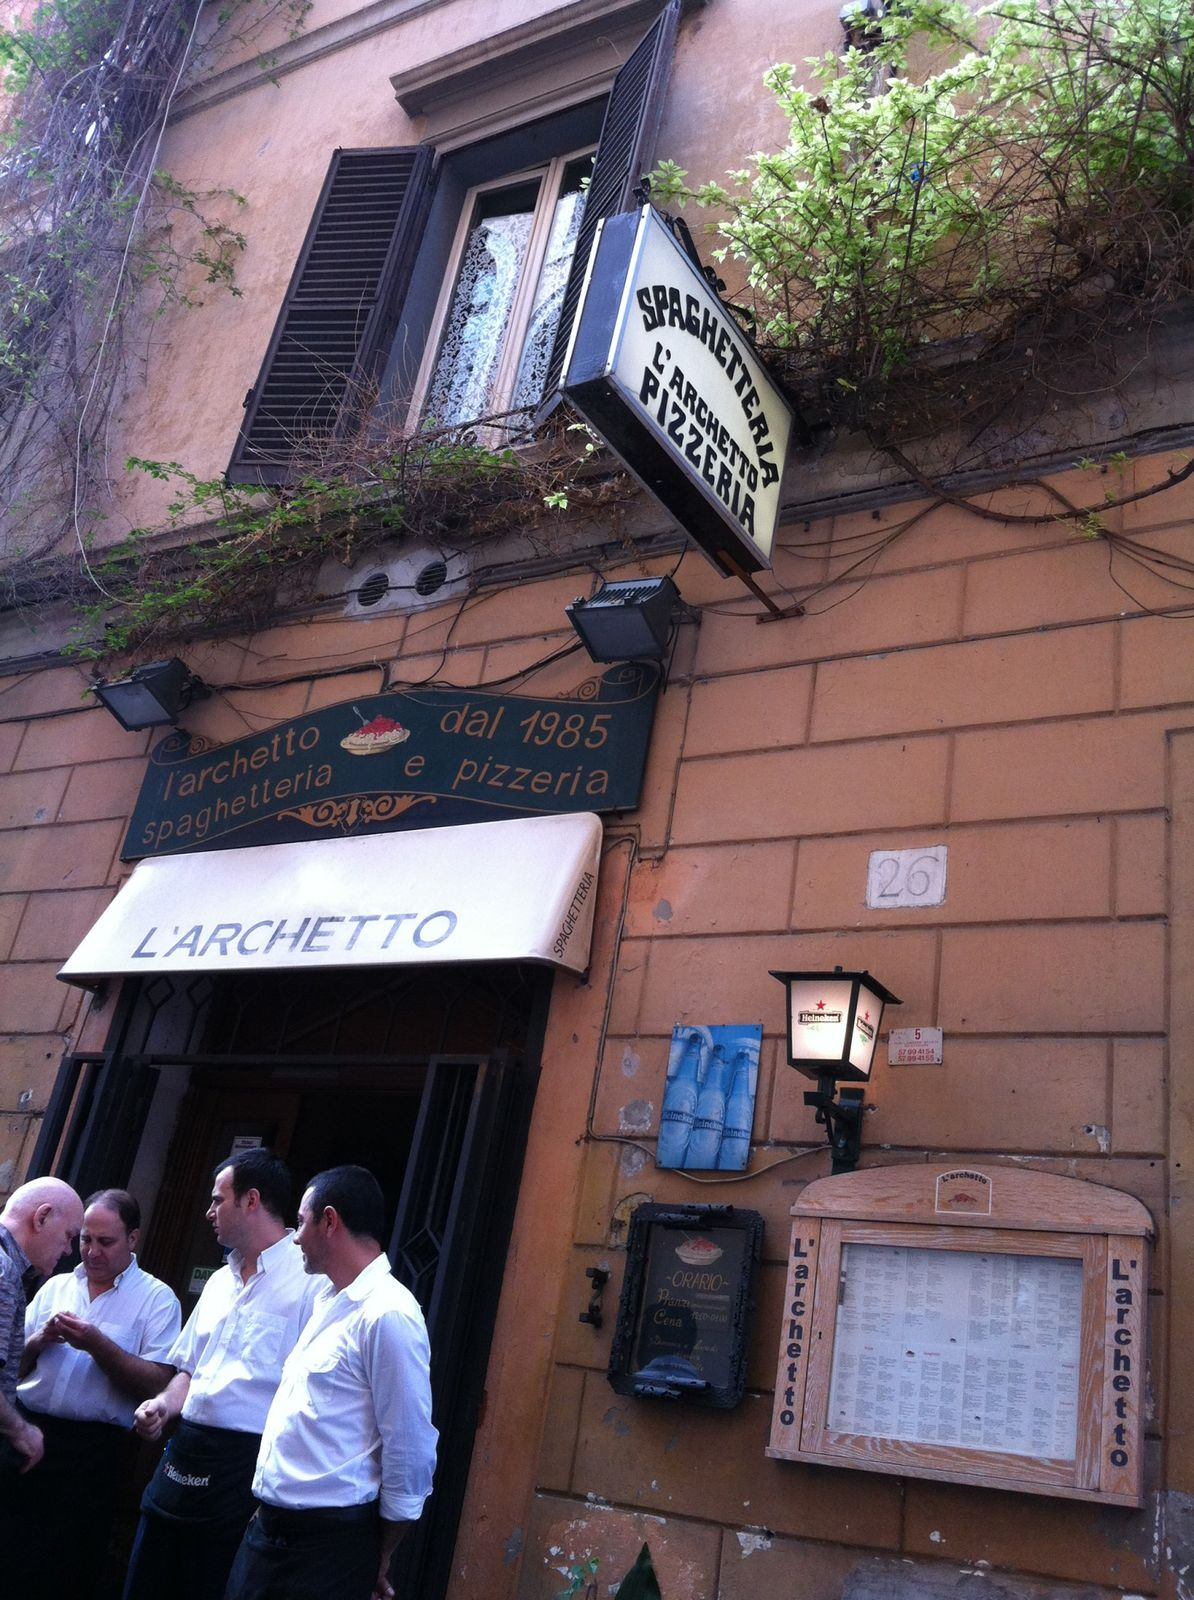 Restaurant L'Archetto